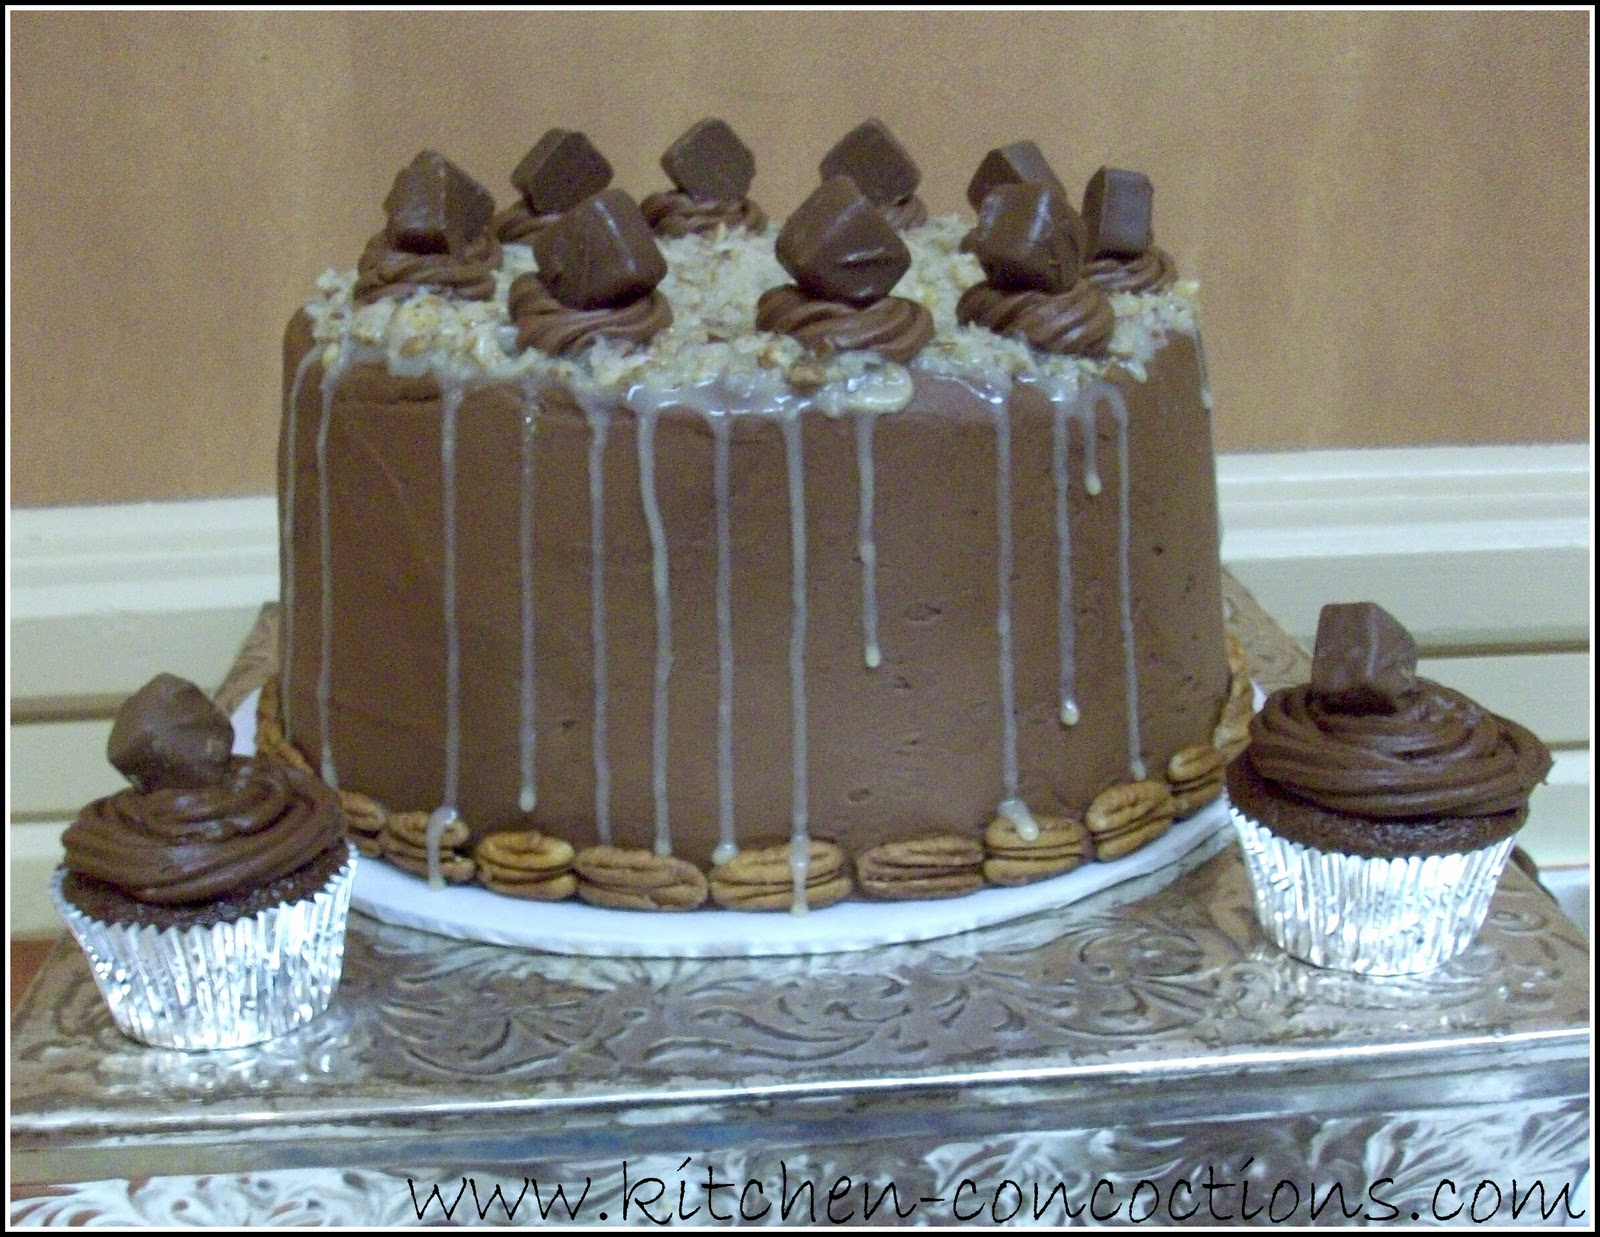 german chocolate wedding cake pictures let s talk wedding cakes kitchen concoctions 14671